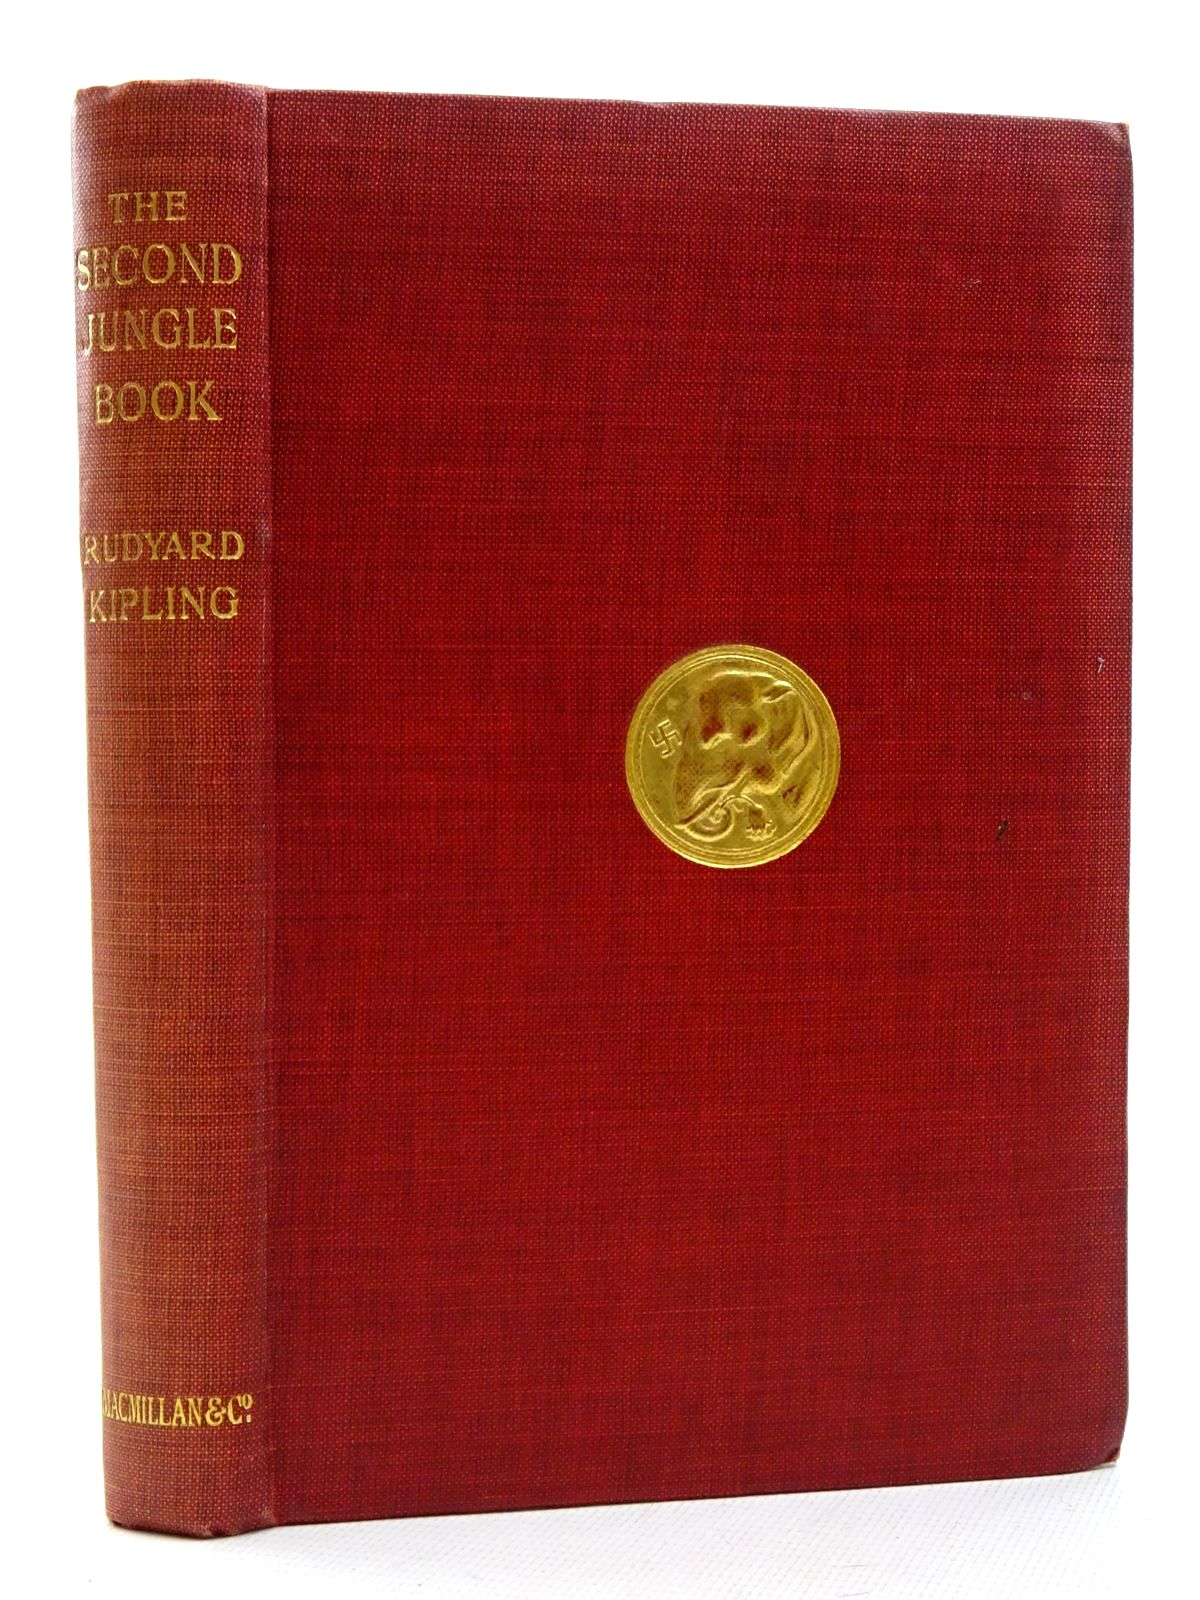 Photo of THE SECOND JUNGLE BOOK written by Kipling, Rudyard illustrated by Kipling, J. Lockwood published by Macmillan & Co. Ltd. (STOCK CODE: 1317336)  for sale by Stella & Rose's Books